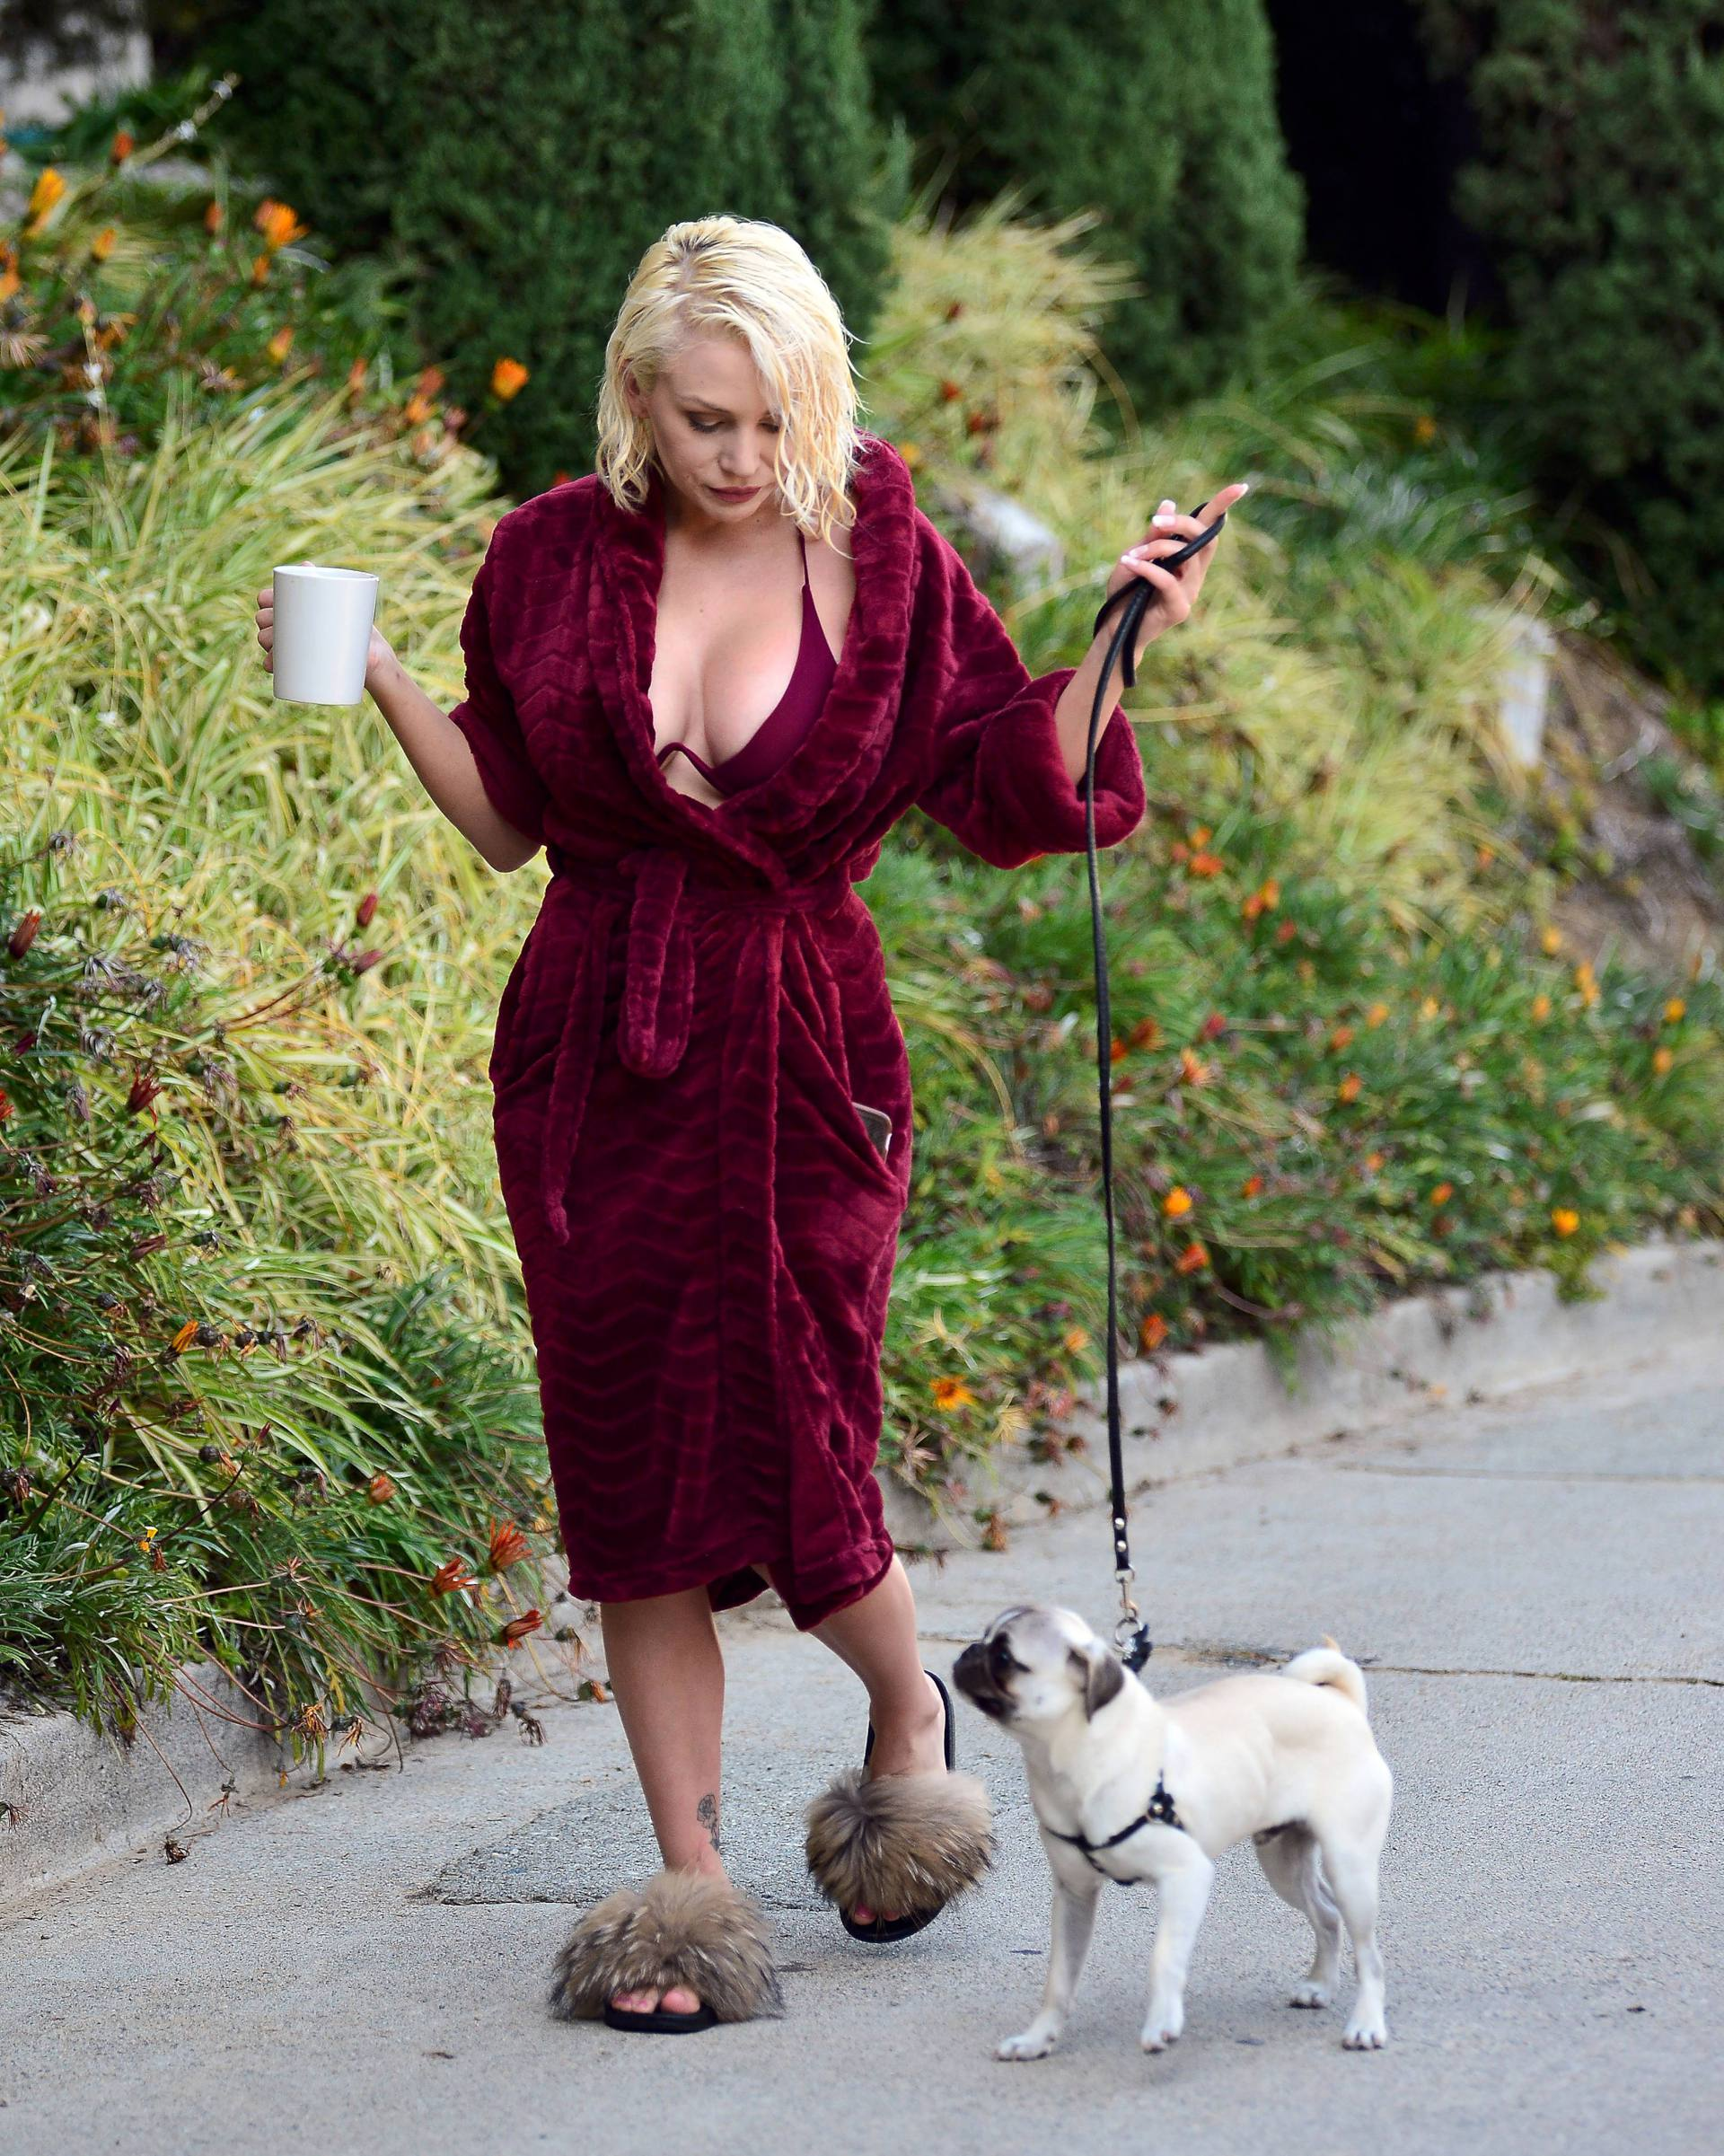 Courtney Stodden Sexy Boobs In Risque Robe Out In Los Angeles 0019